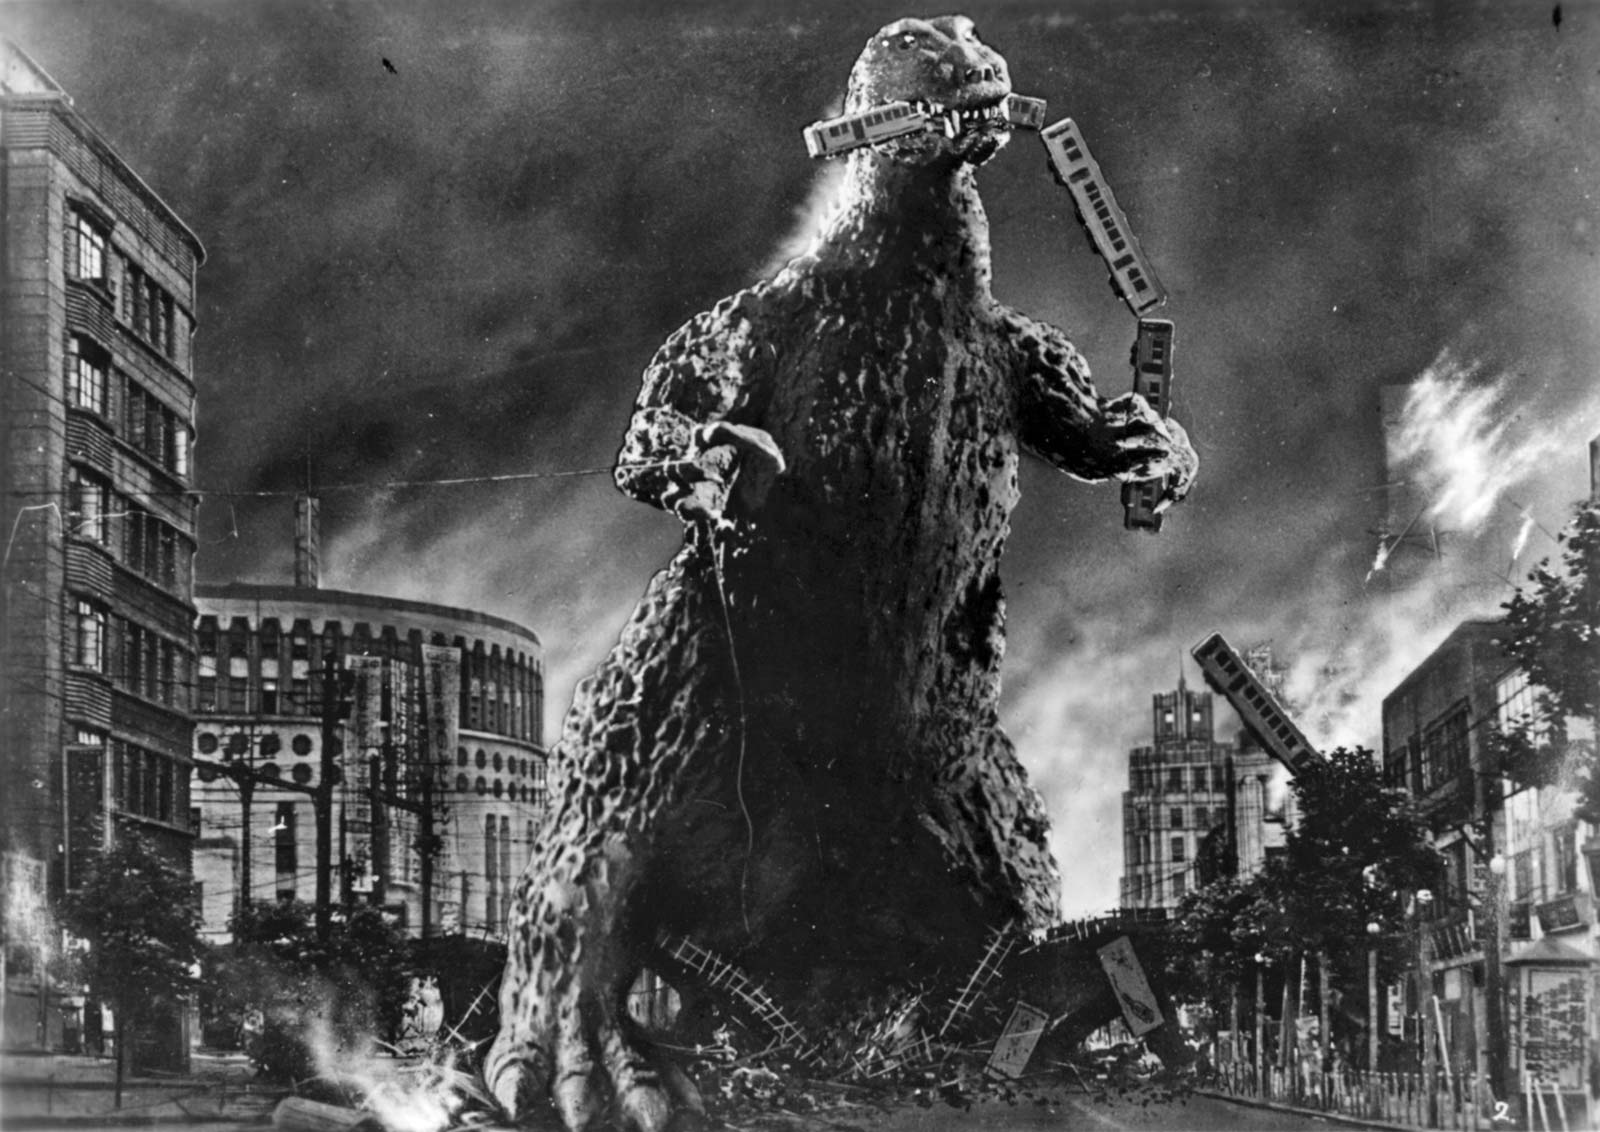 Godzilla (1954) by Ishiro Honda | Japanese Film Reviews